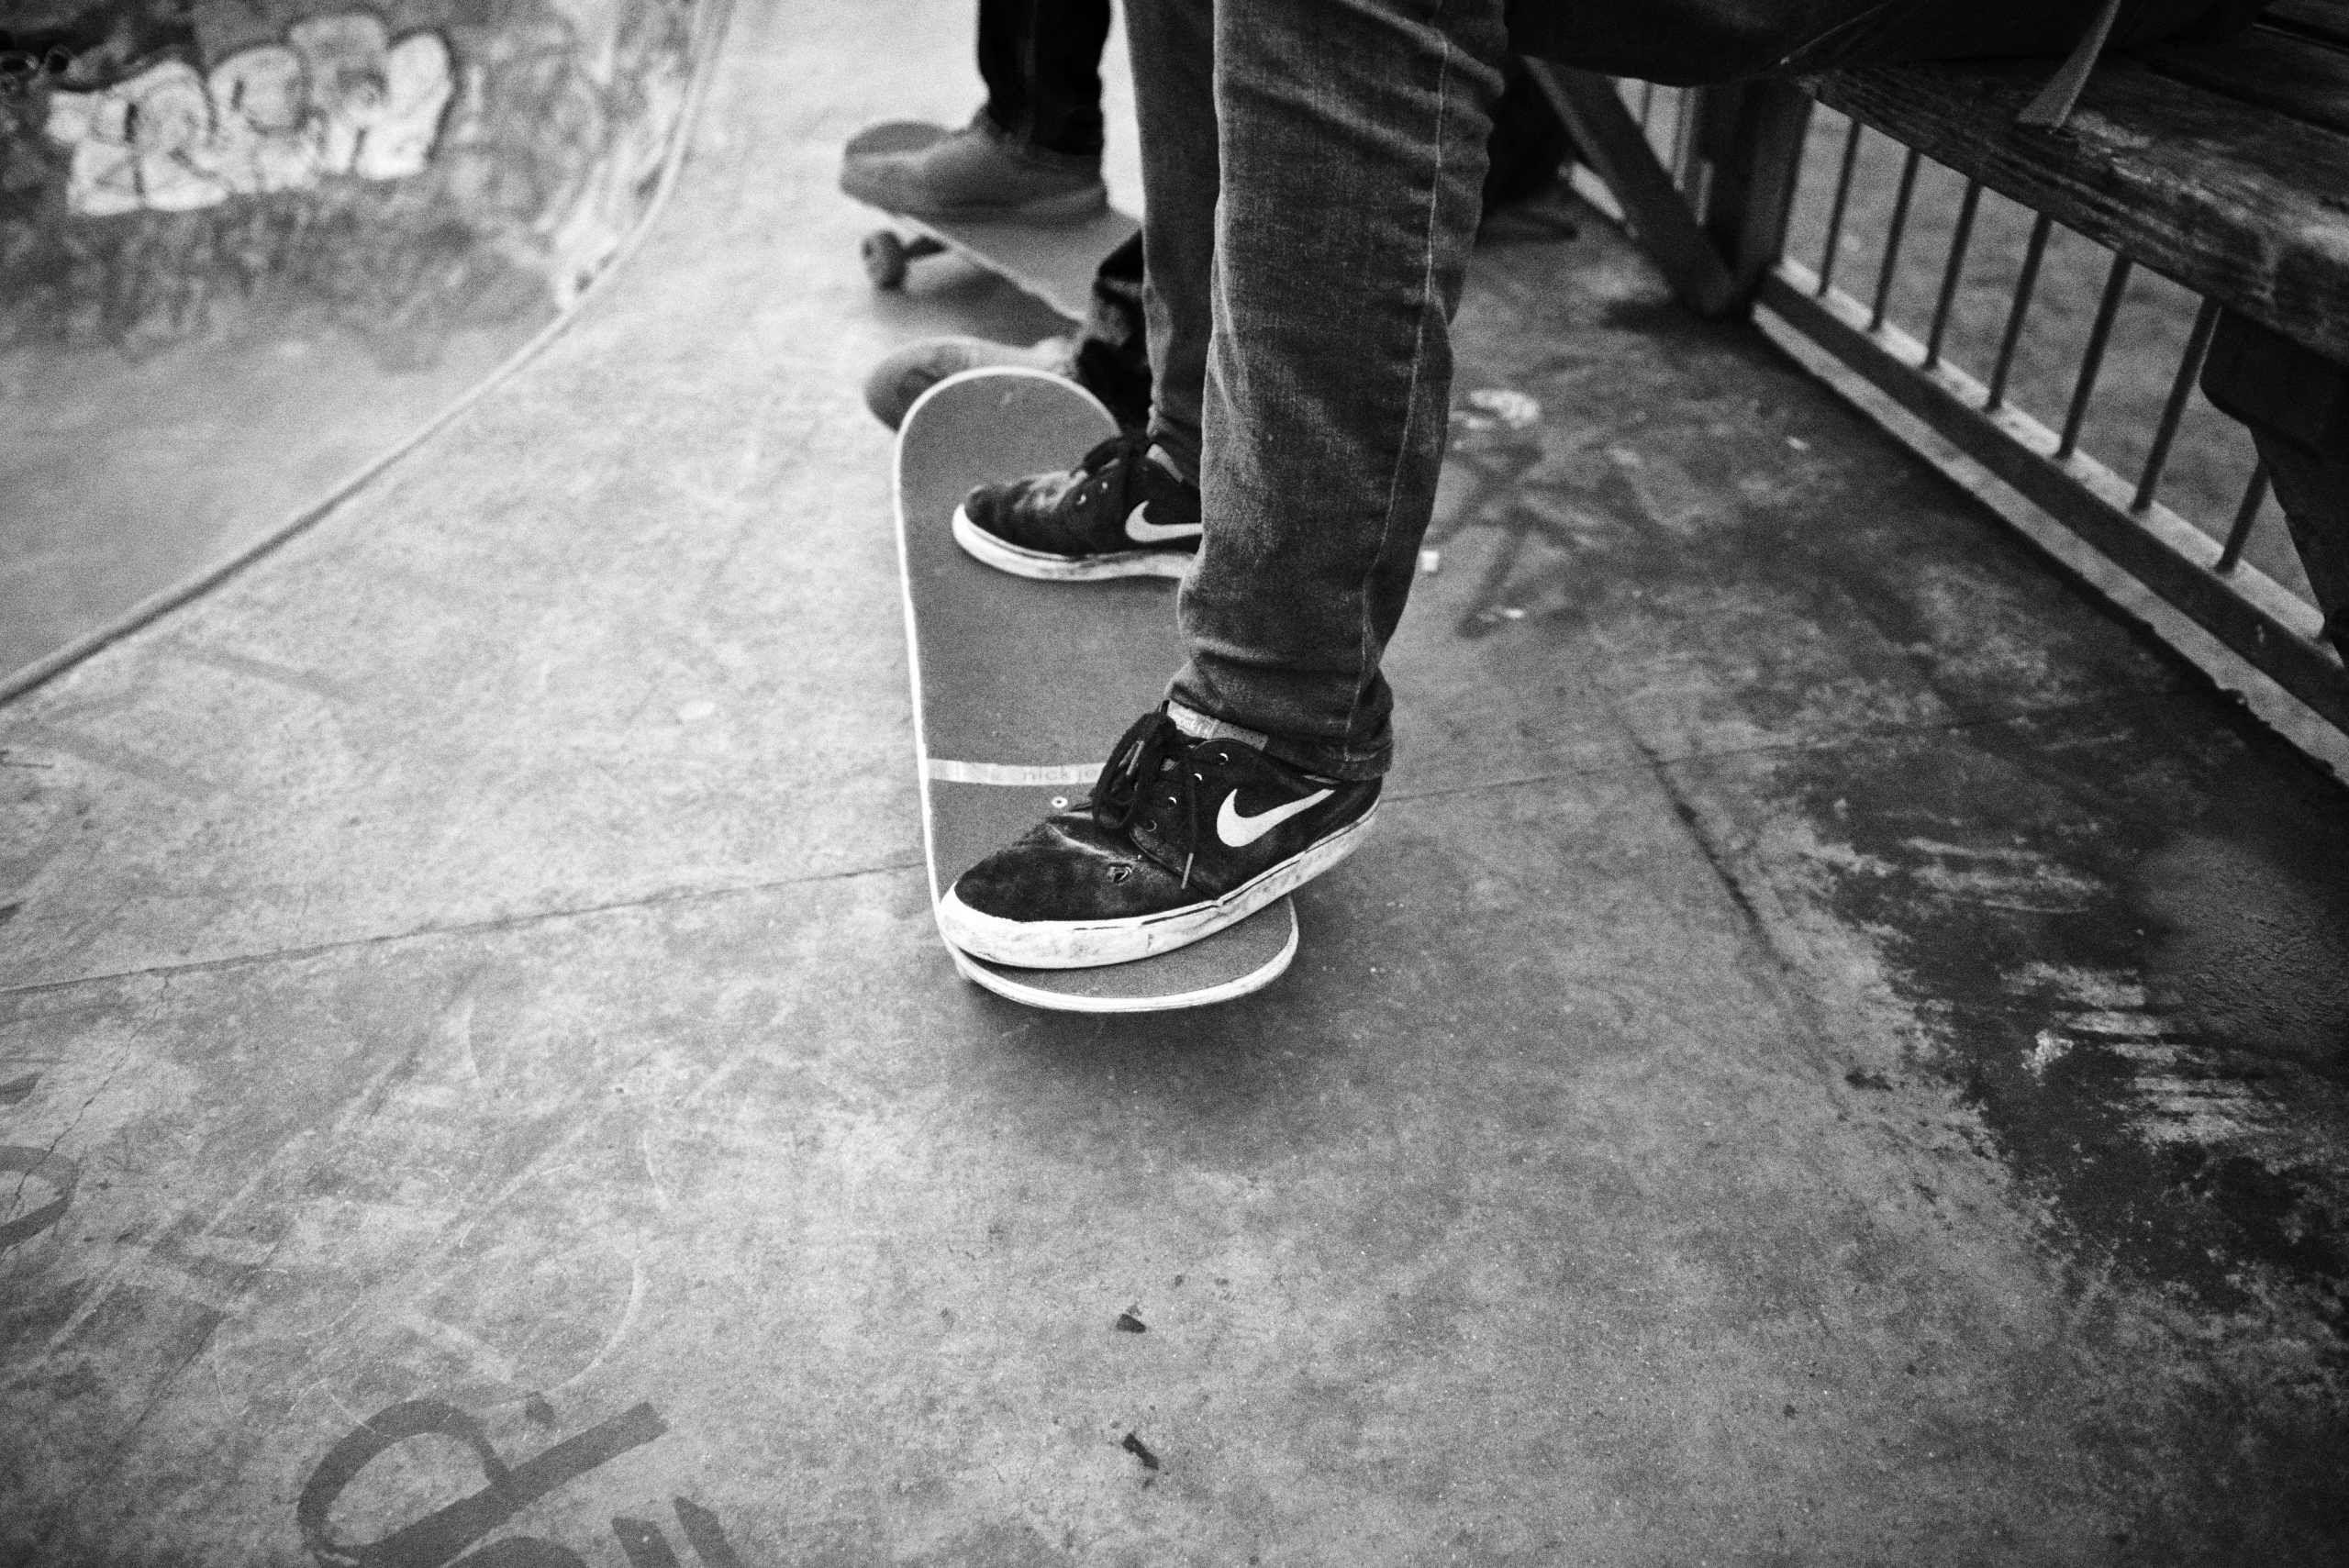 Brixton-skate-park-Matt-Stansfield-Lifestyle-Youth-Culture_3